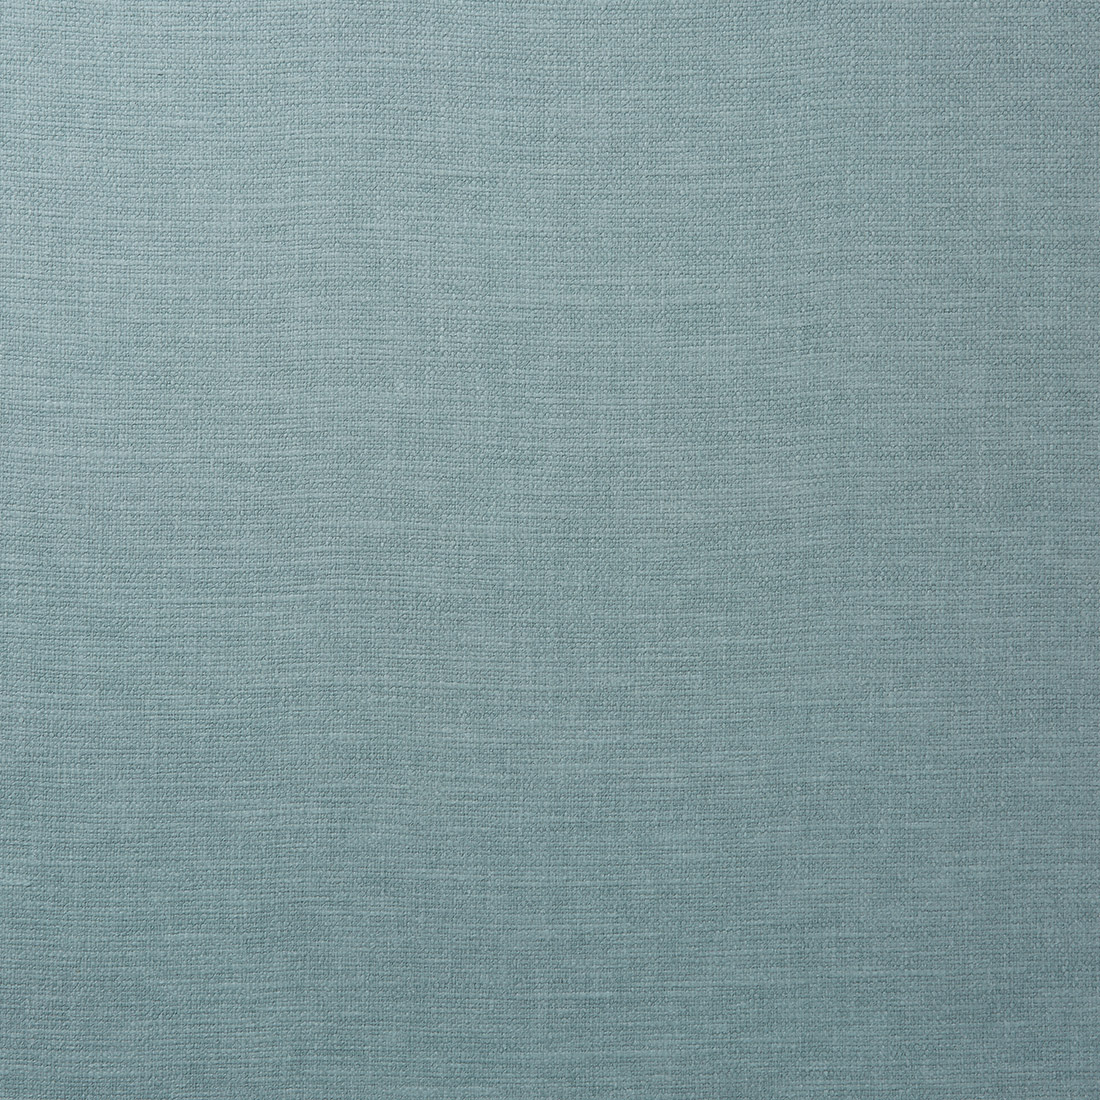 Lunar Mineral Upholstery Fabric